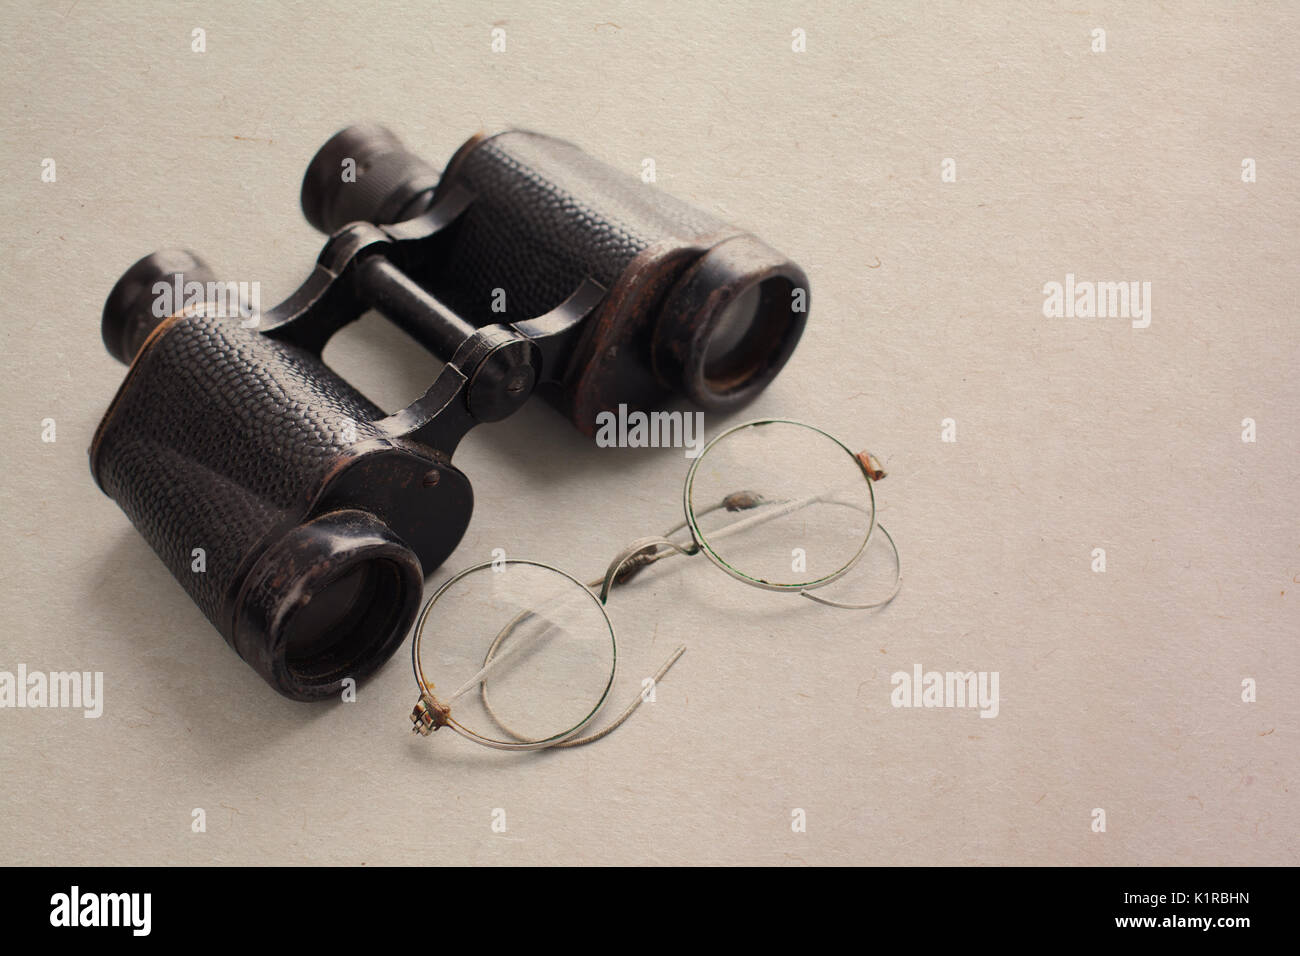 binocular and glasses - Stock Image